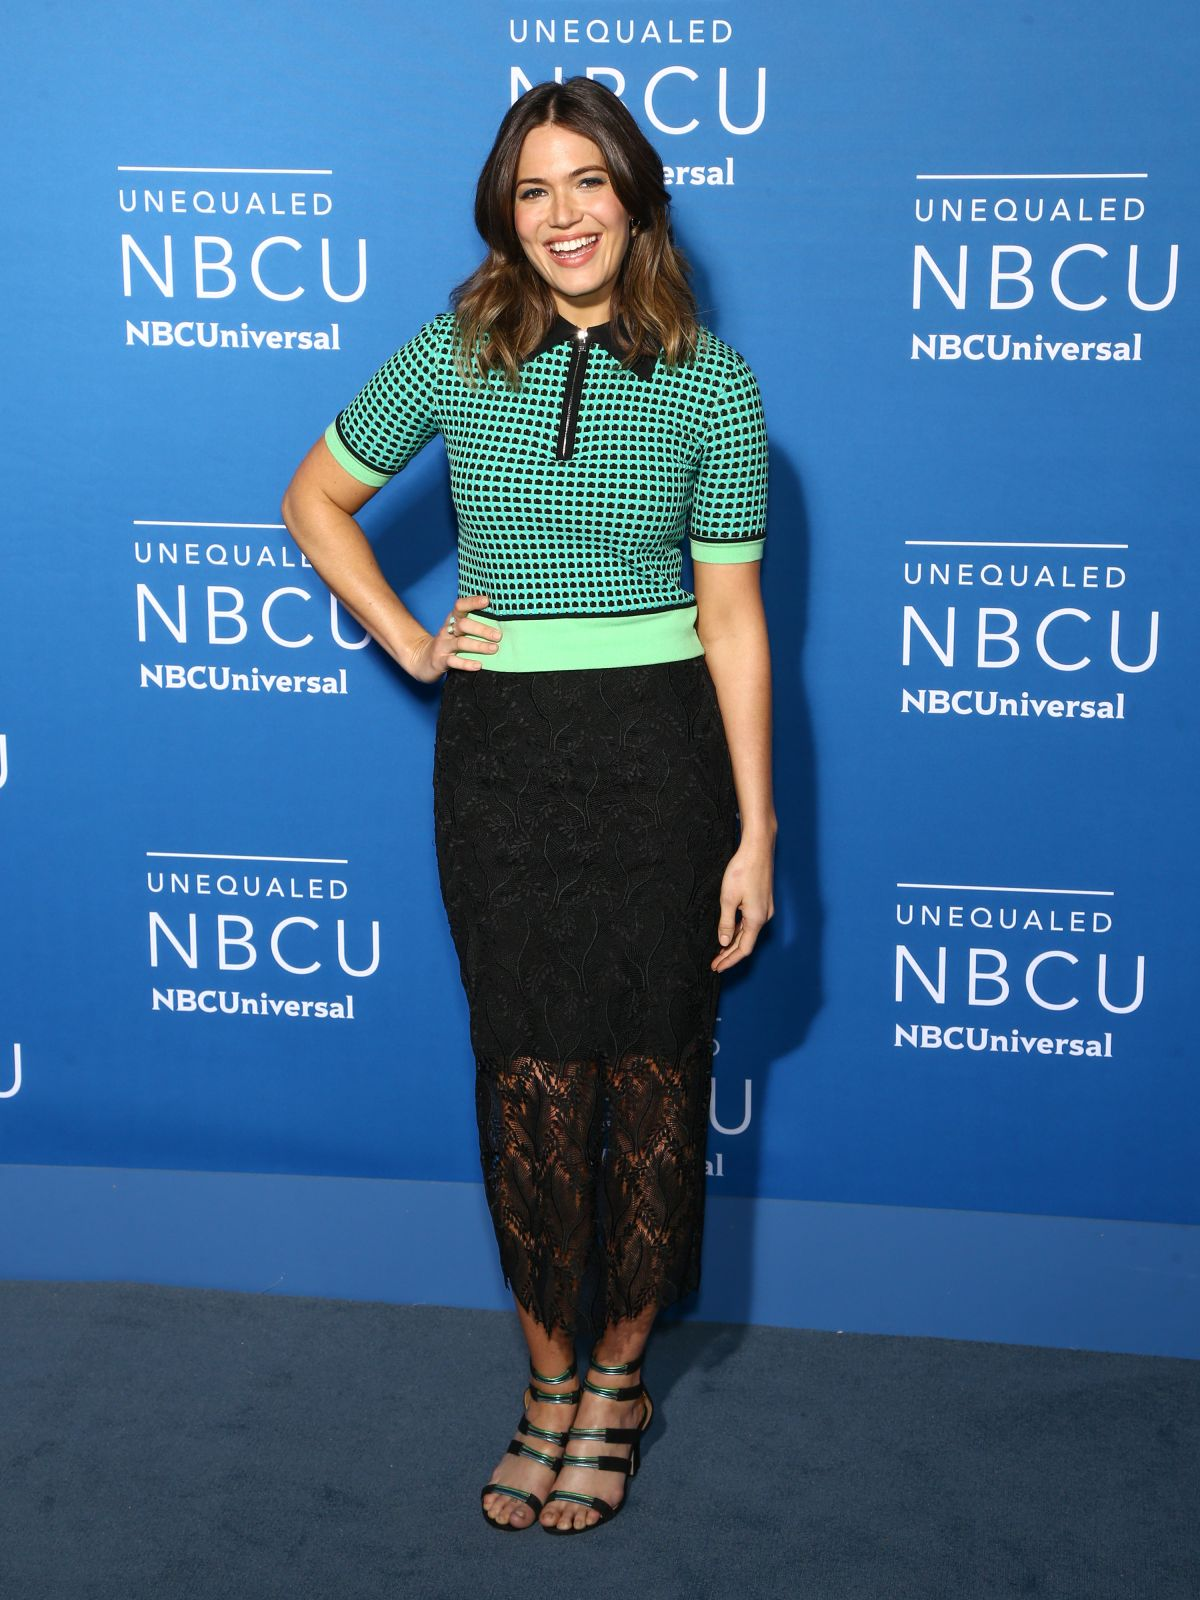 Mandy Moore At NBCUniversal Upfront in New York City   mandy-moore-at-nbcuniversal-upfront-in-new-york-city_9